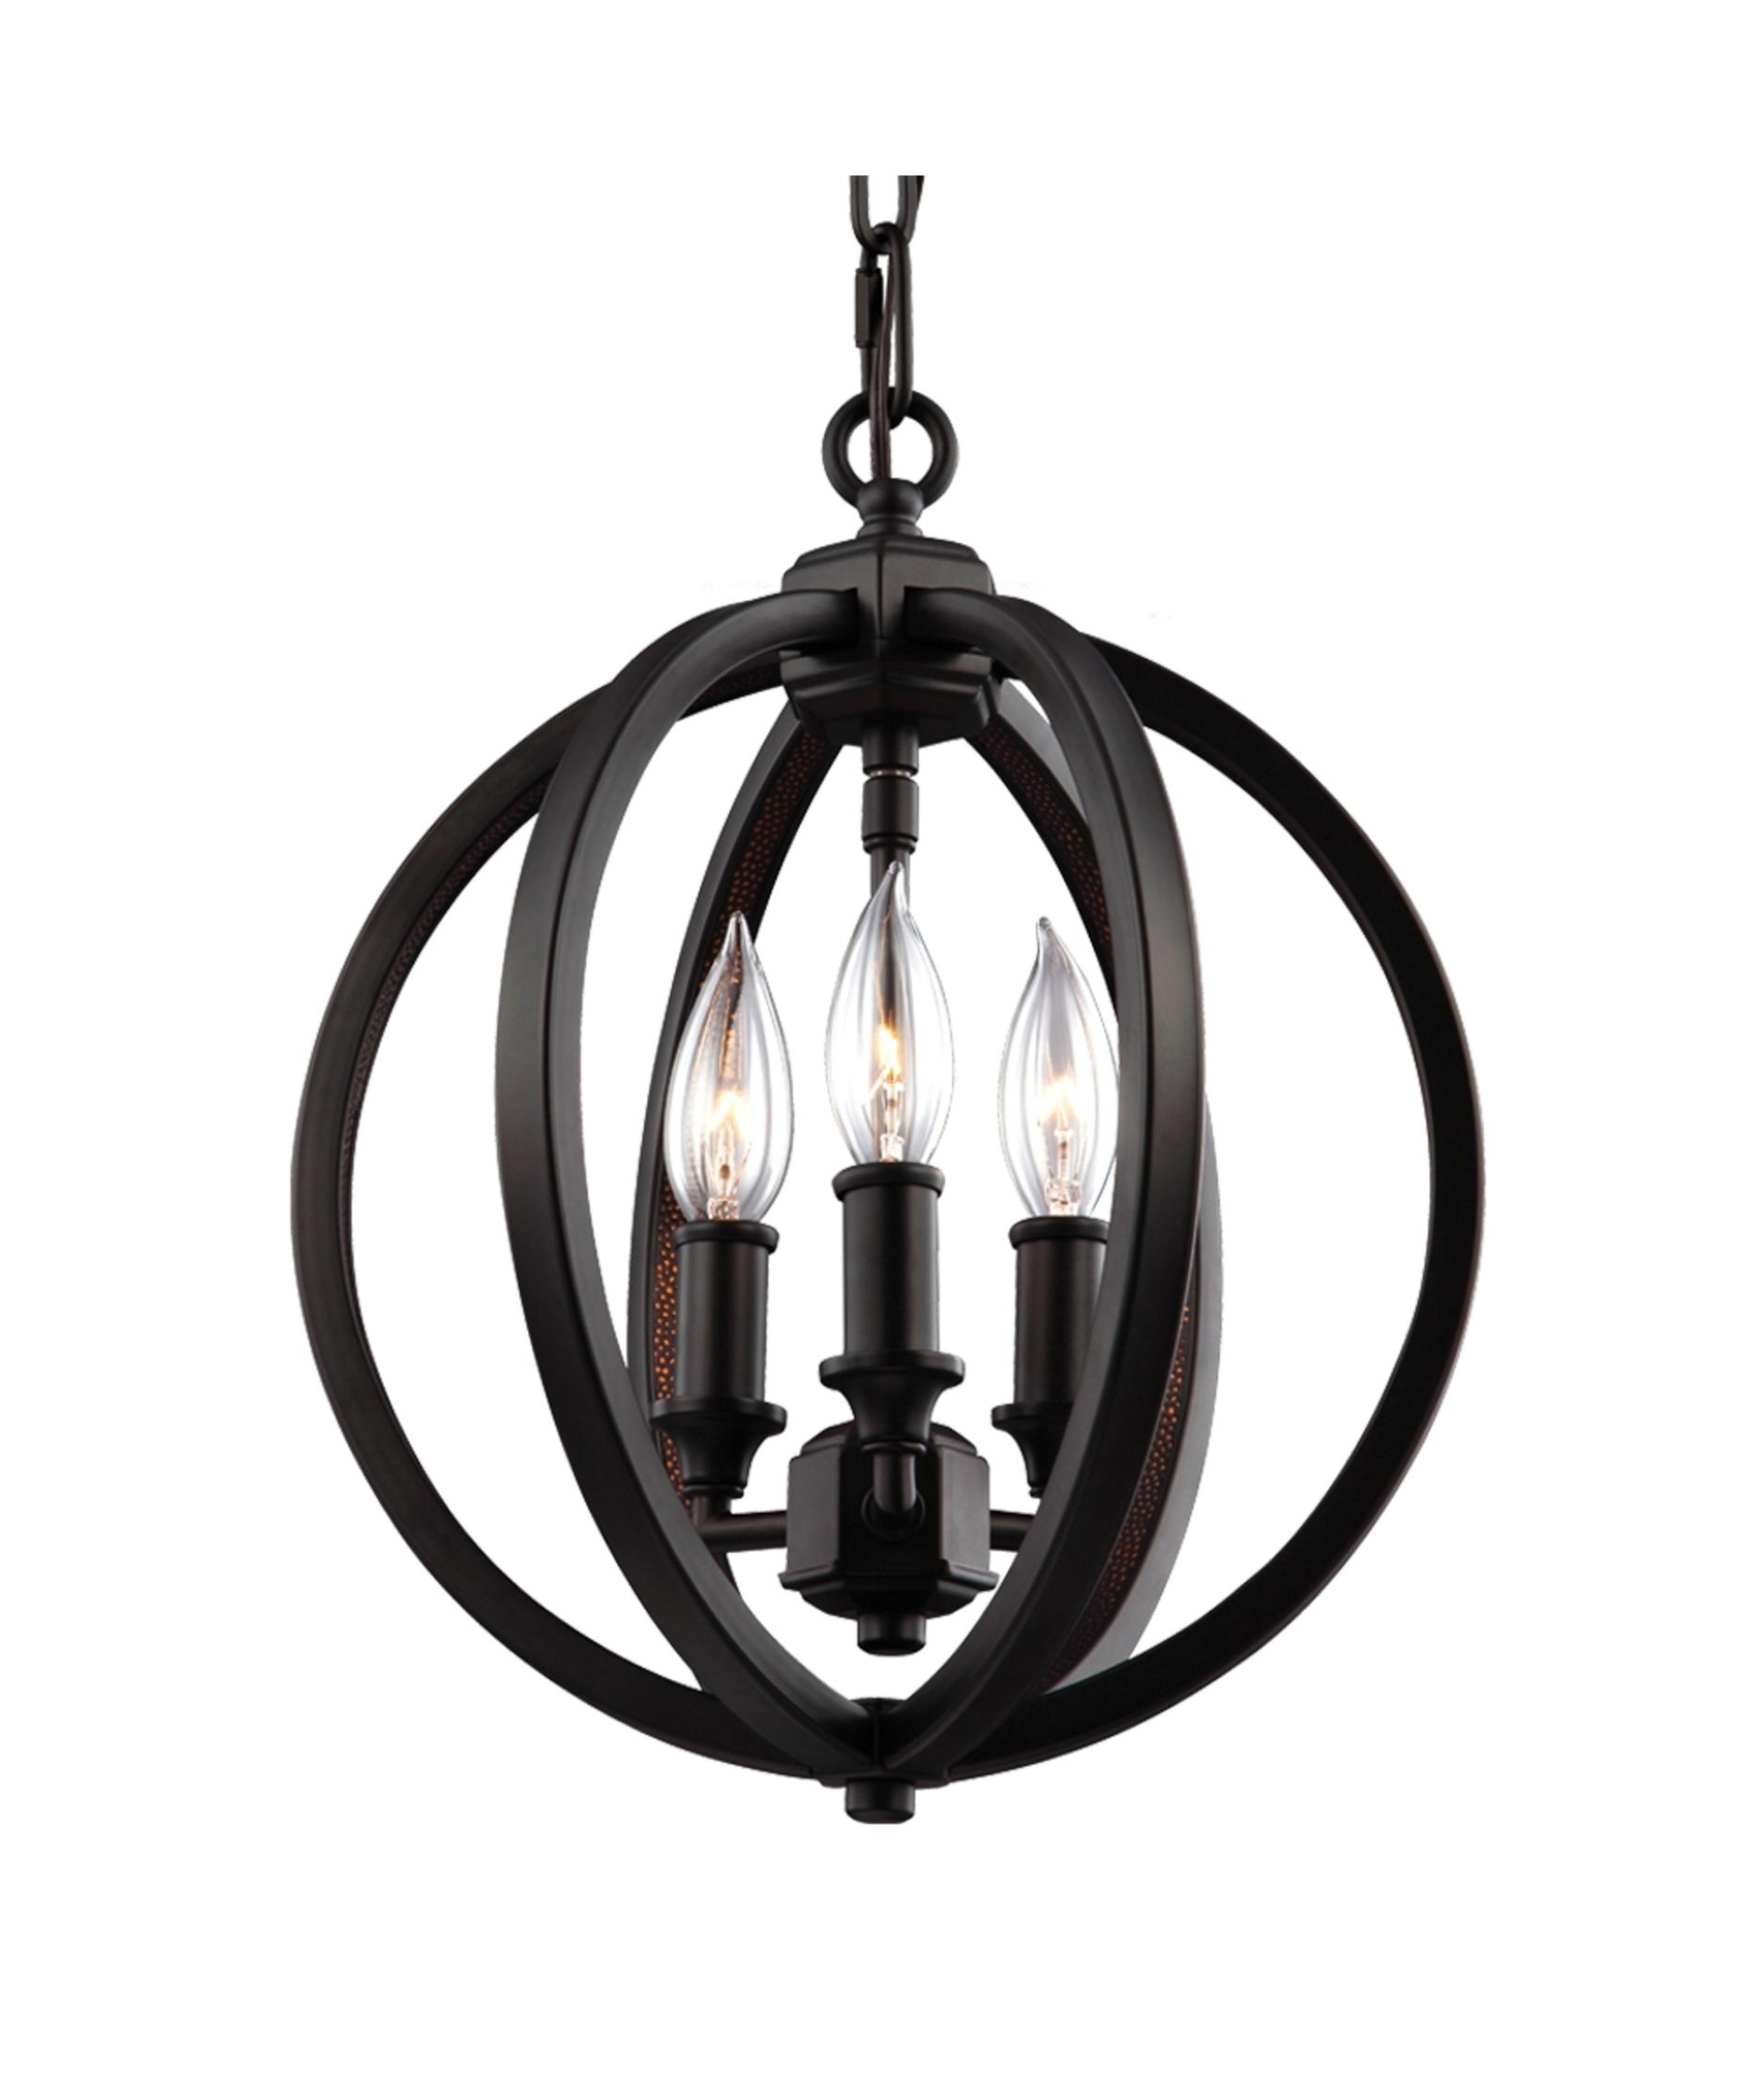 Murray Feiss F3059 3 Corinne 11 Inch Wide 3 Light Mini Chandelier In Well Liked Feiss Chandeliers (View 5 of 15)